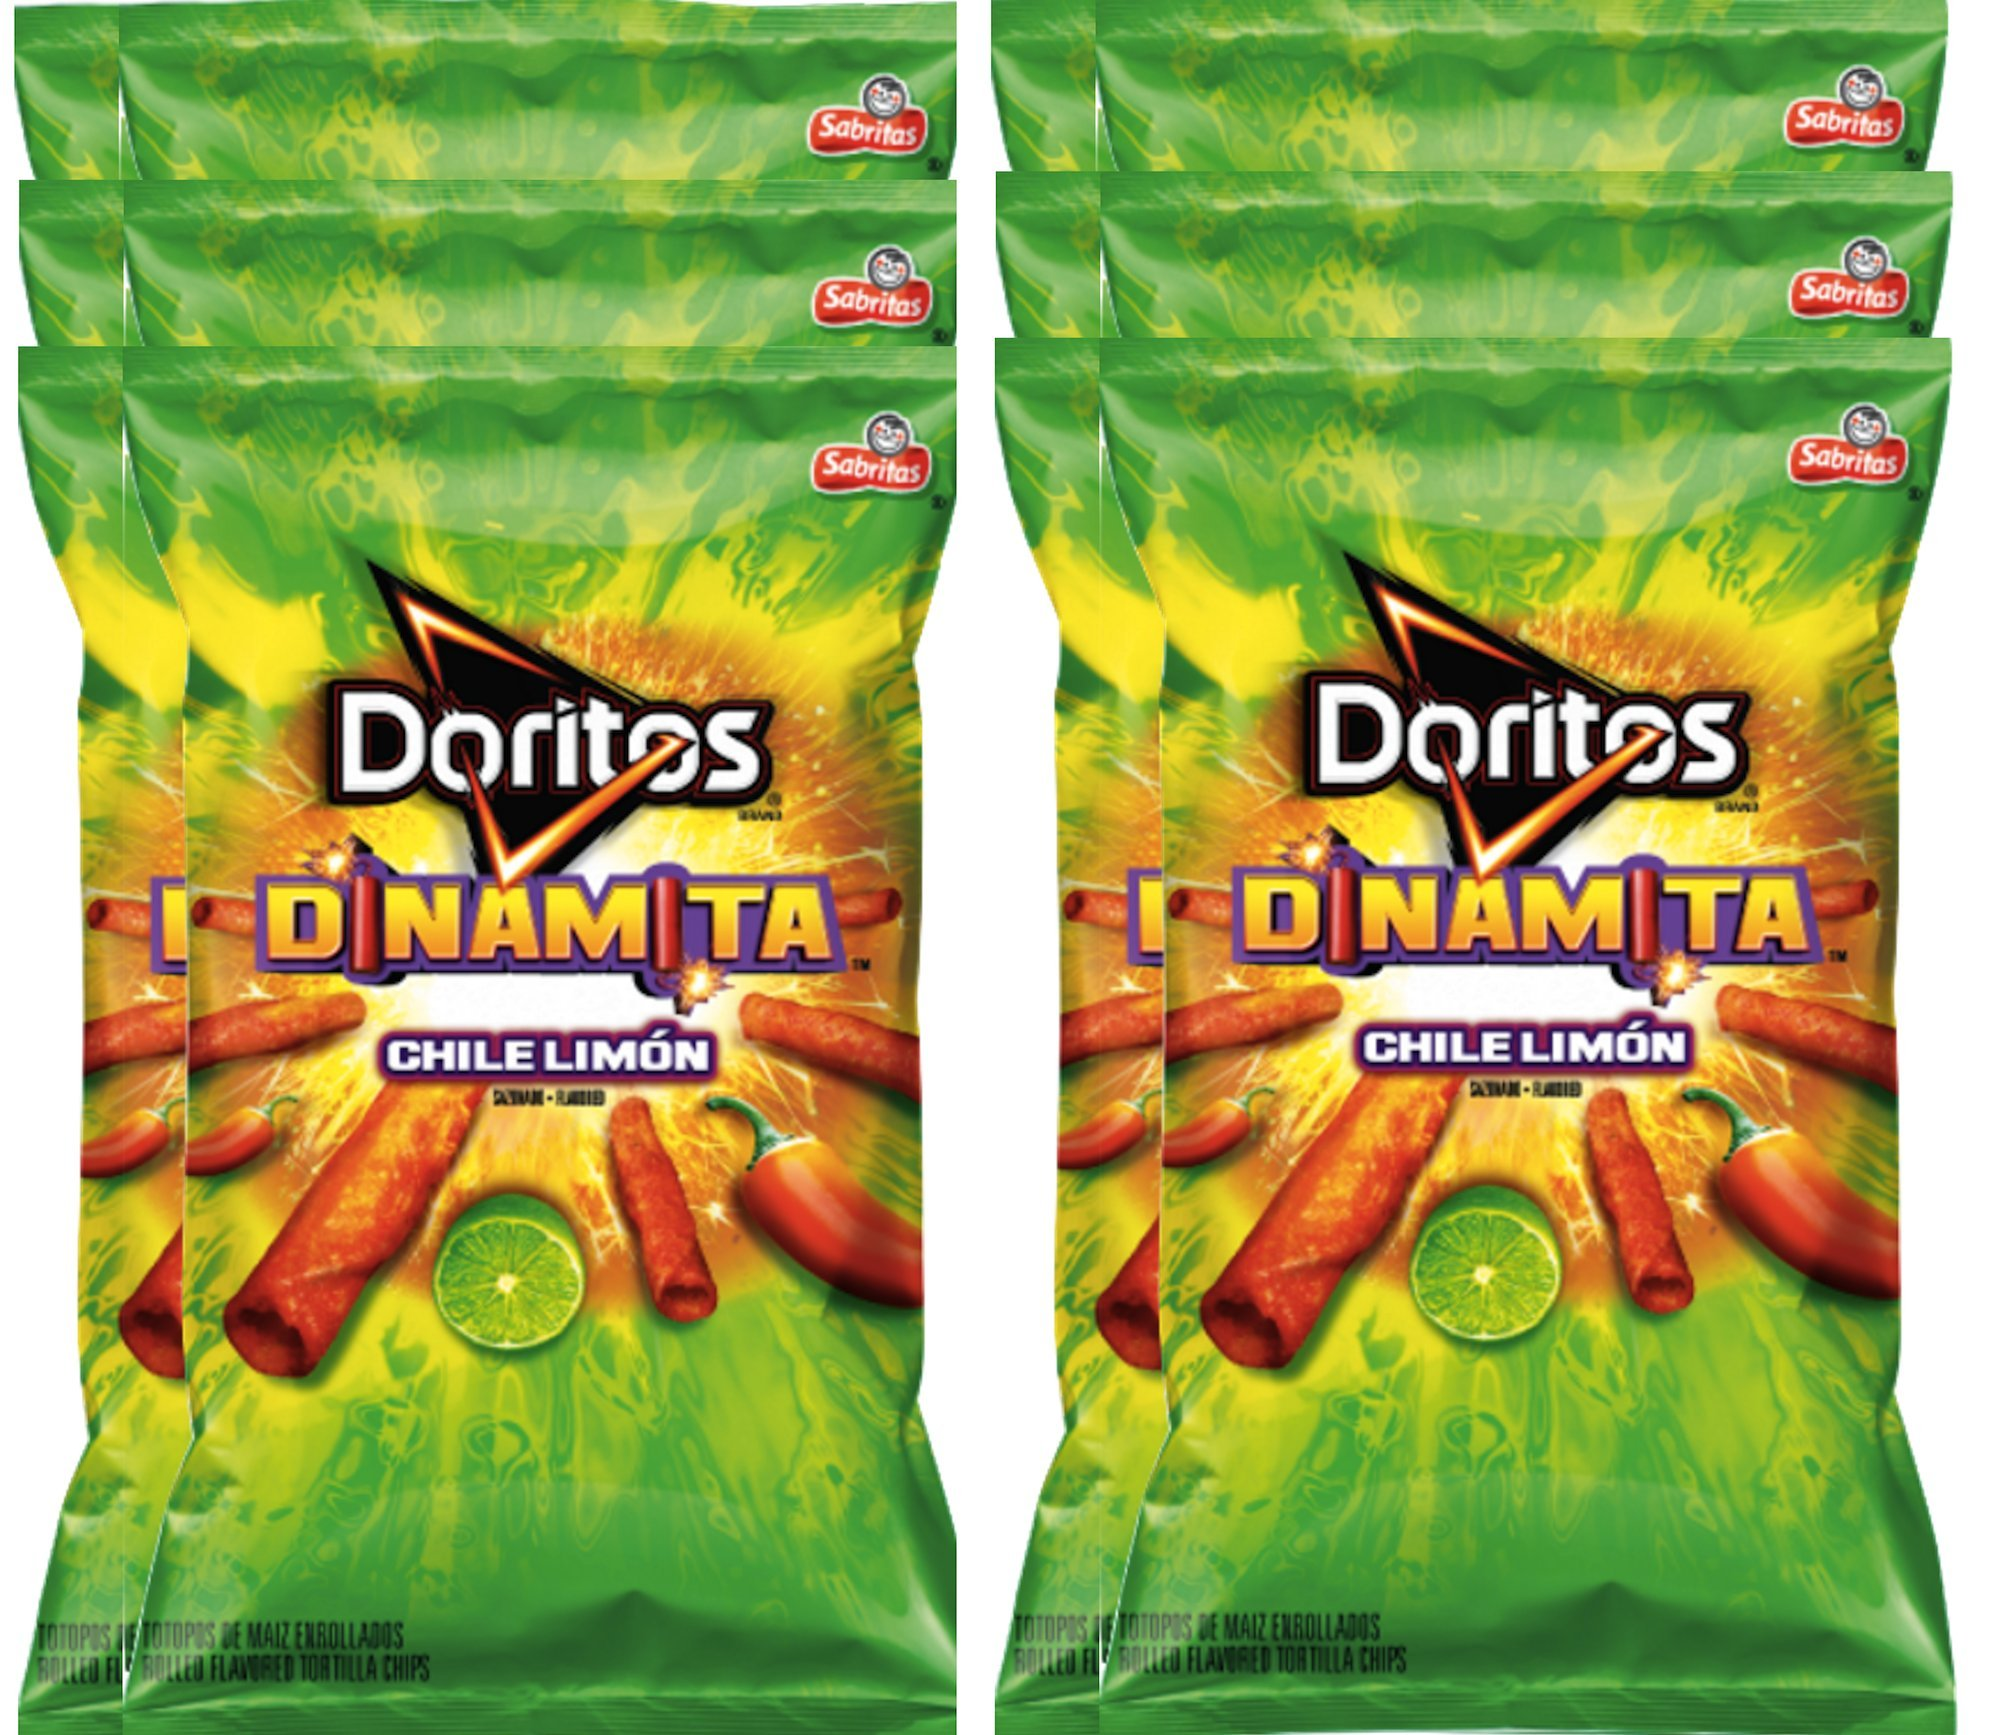 Doritos Dinamita Chile Limon Rolled Flavored Tortilla Chips, 9.25 oz Snack Care Package for College, Military, Sports (12)